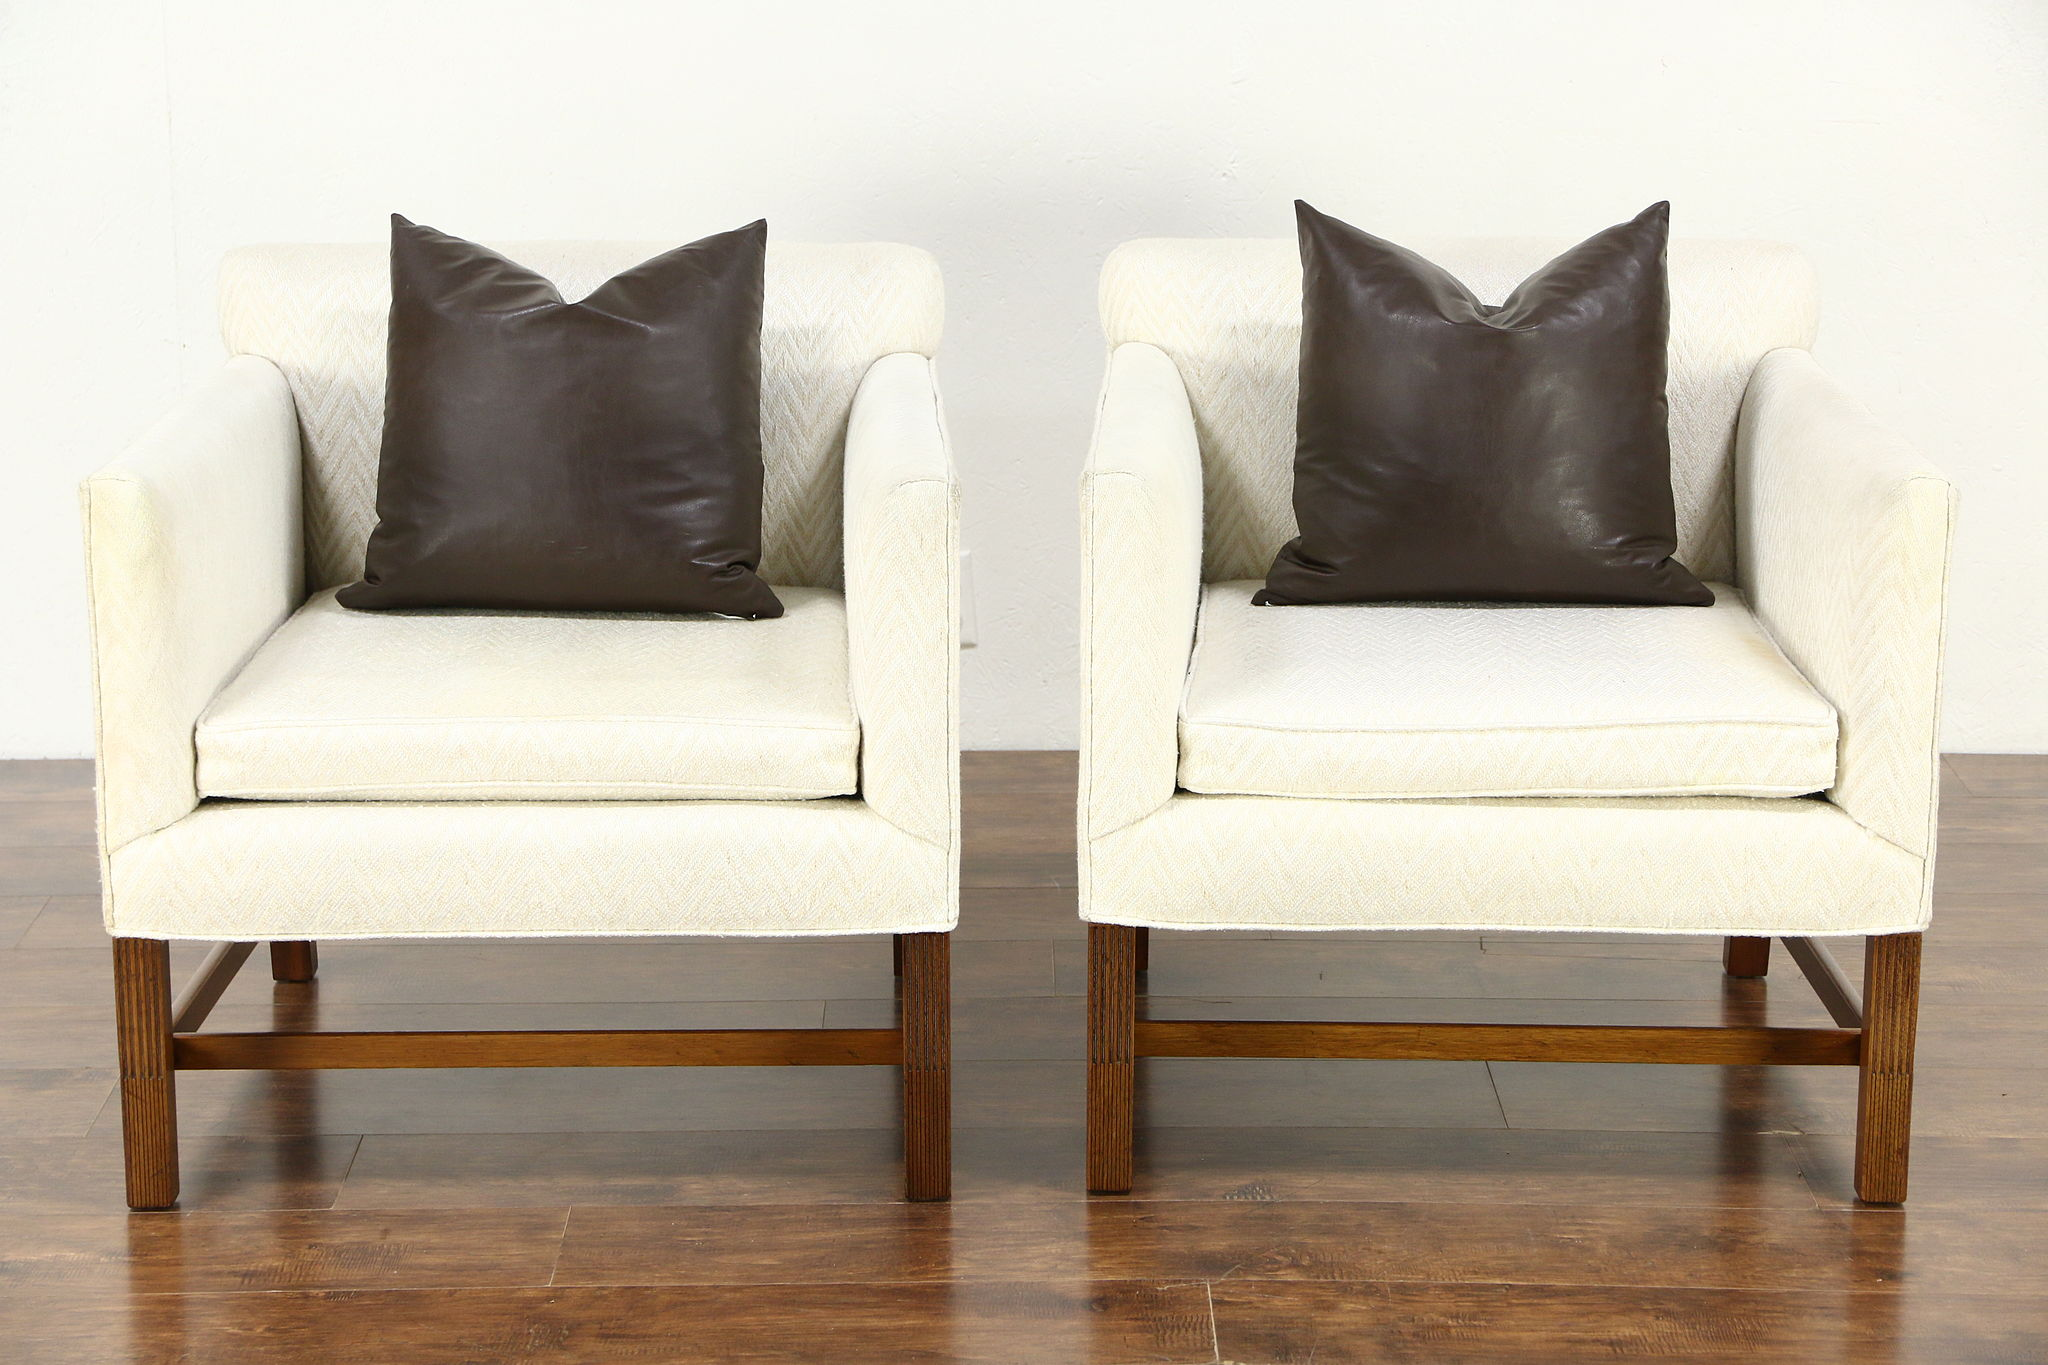 Pair Kittinger Signed Vintage Chairs with Arms  Original Upholstery. Pair Kittinger Signed Vintage Chairs with Arms  Original